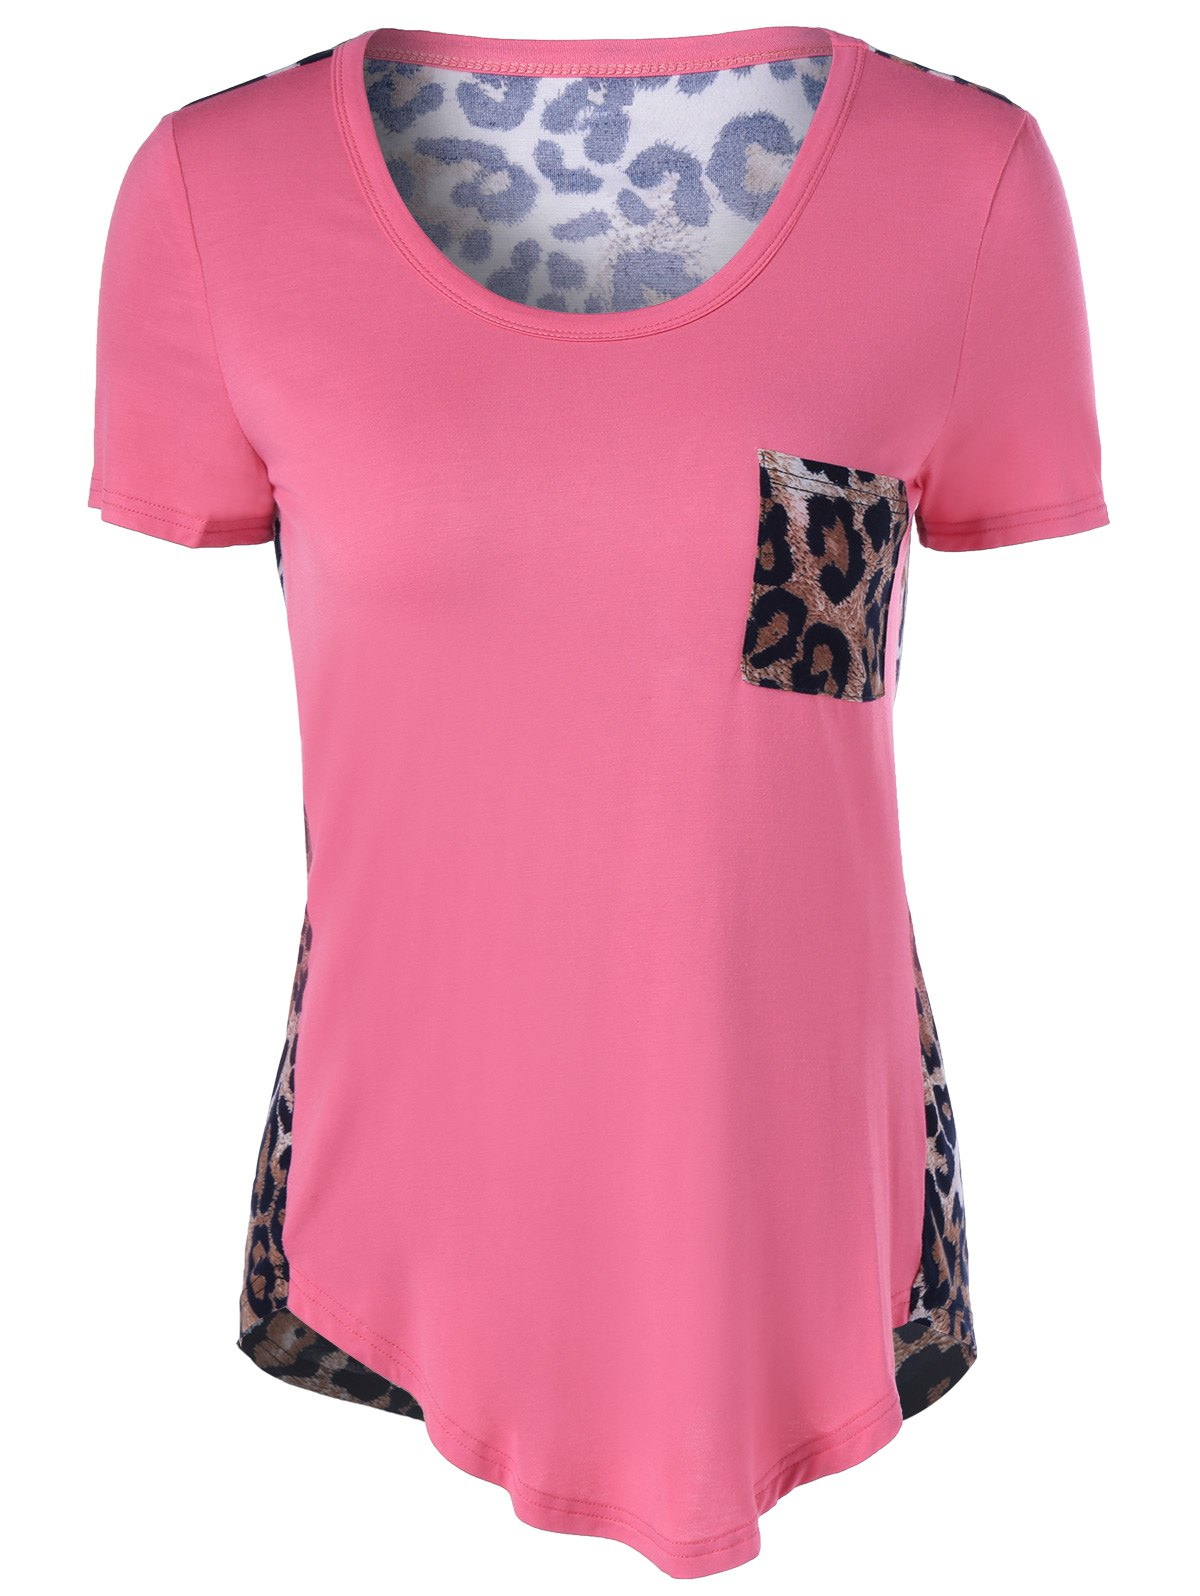 Short Sleeves U-Neck Leopard T-Shirt - LIGHT PINK XL